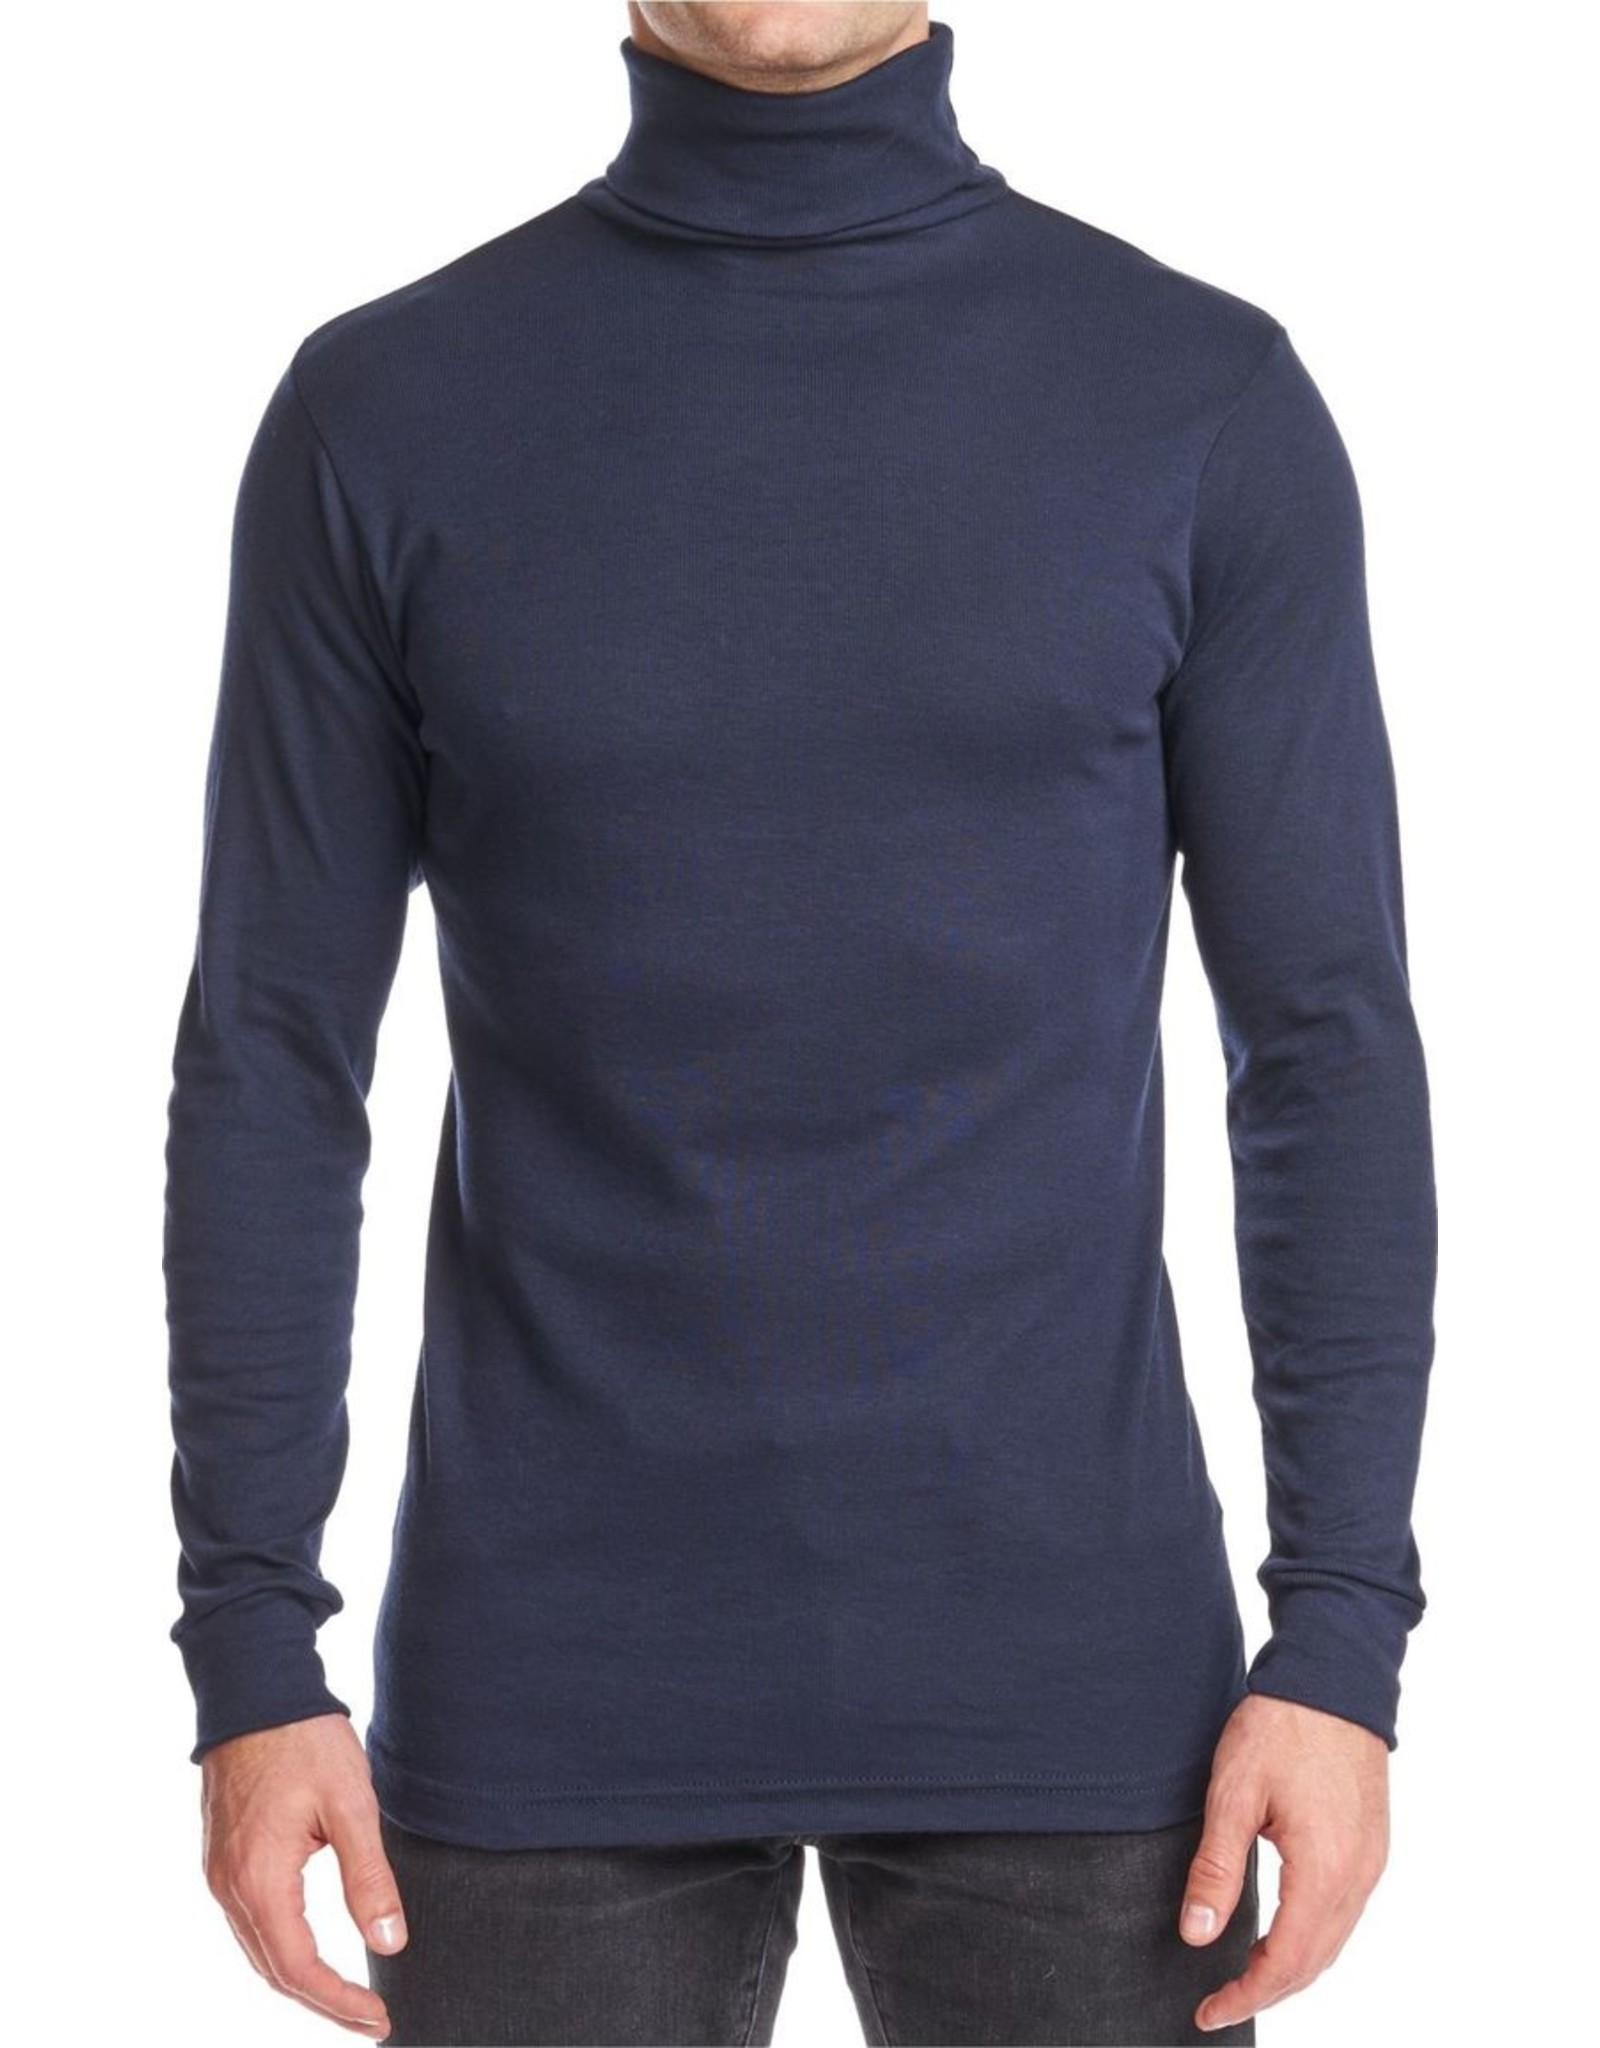 Stanfields Stanfield's 4640 Rib Turtleneck - 3 Colors